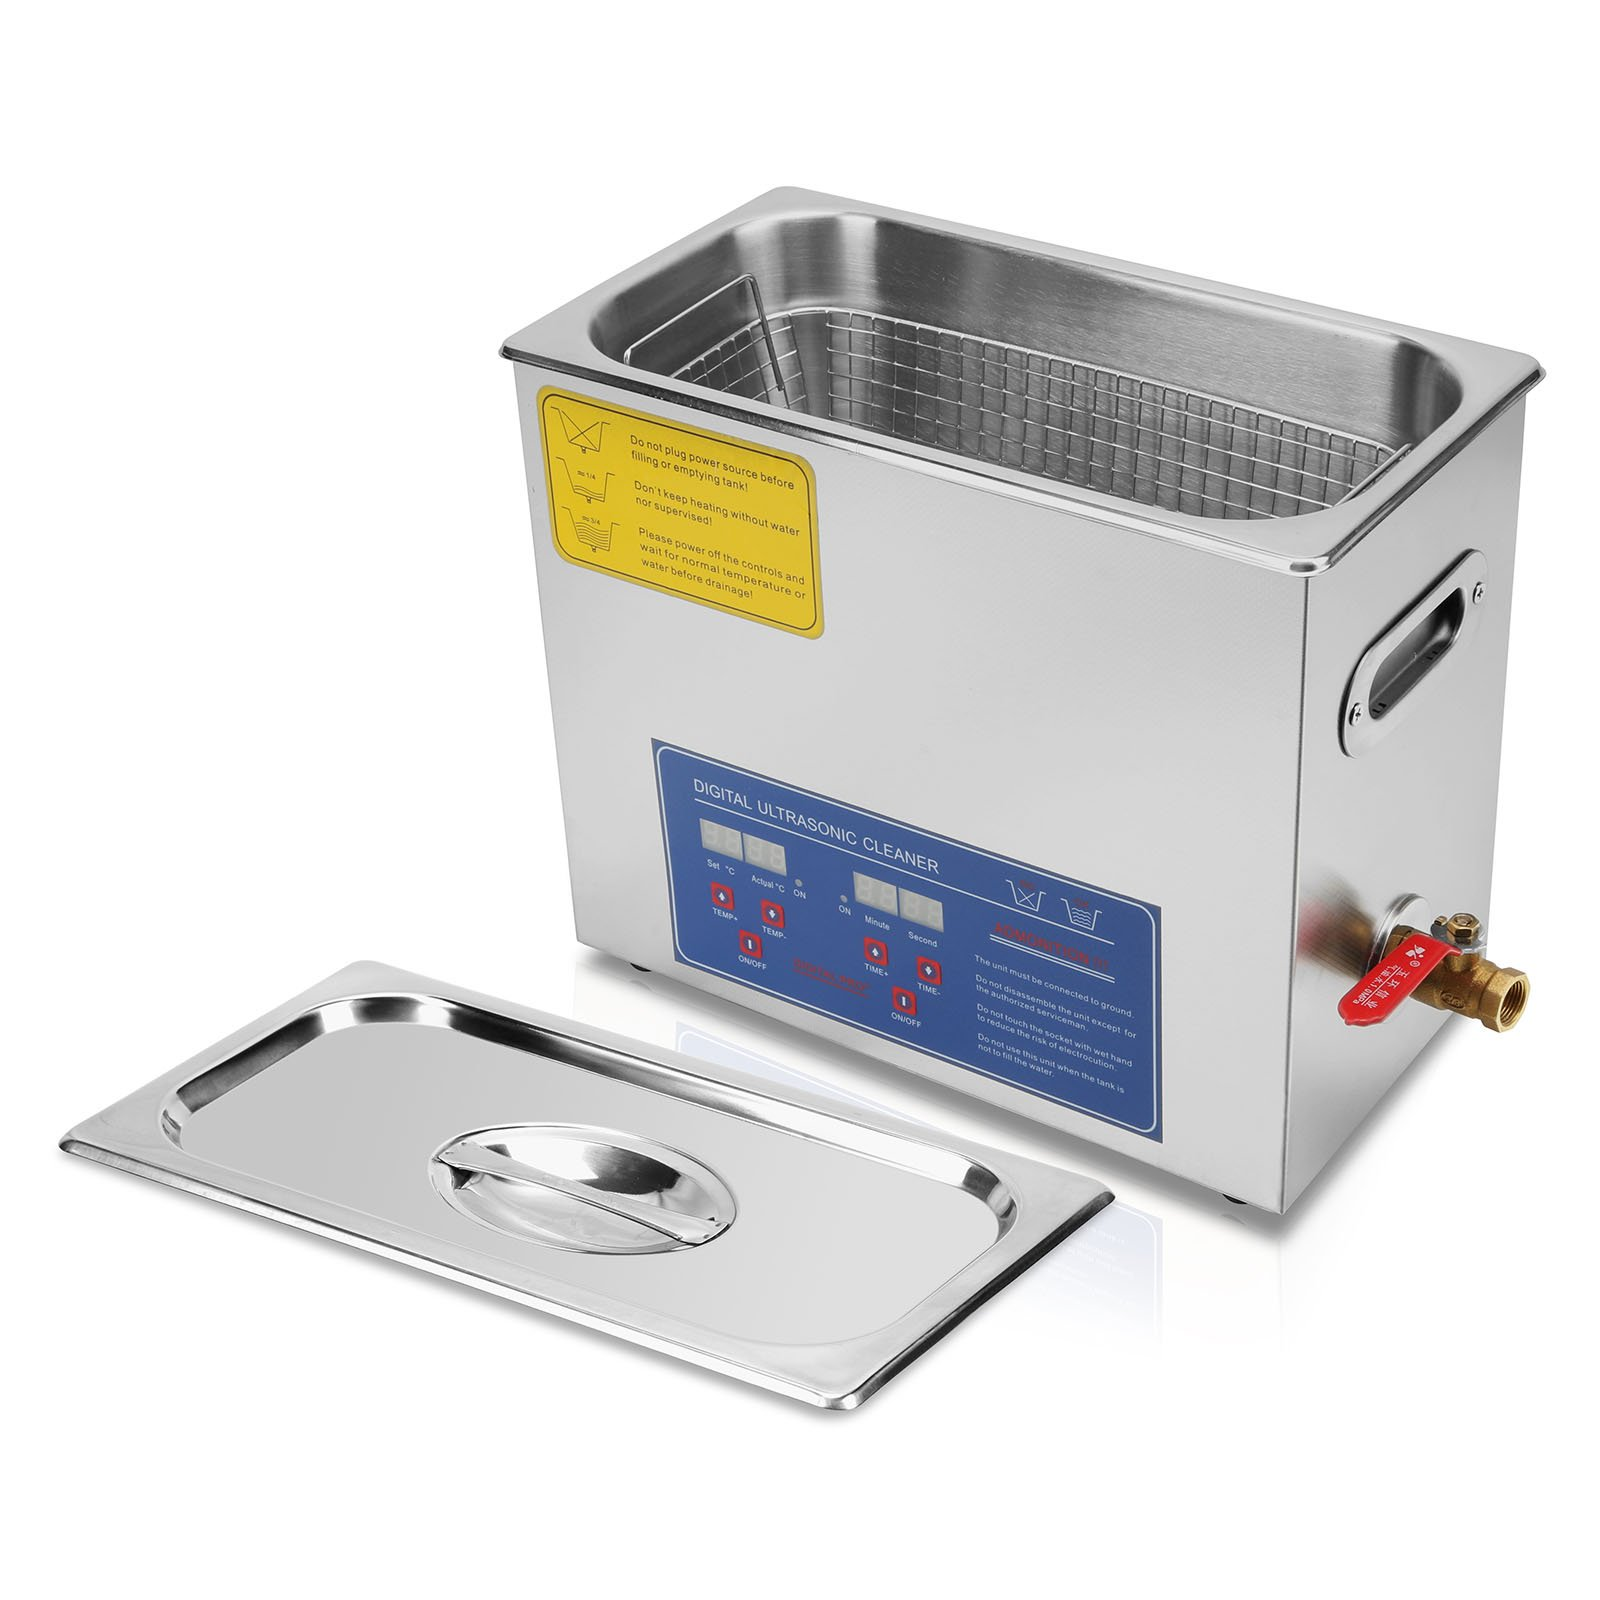 OrangeA Ultrasonic Cleaner Ultrasonic Cleaner Solution Heated Ultrasonic Cleaner 6L for Jewelry Watch Cleaning Industry Heated Heater with Drainage System (6 Liter) by OrangeA (Image #2)